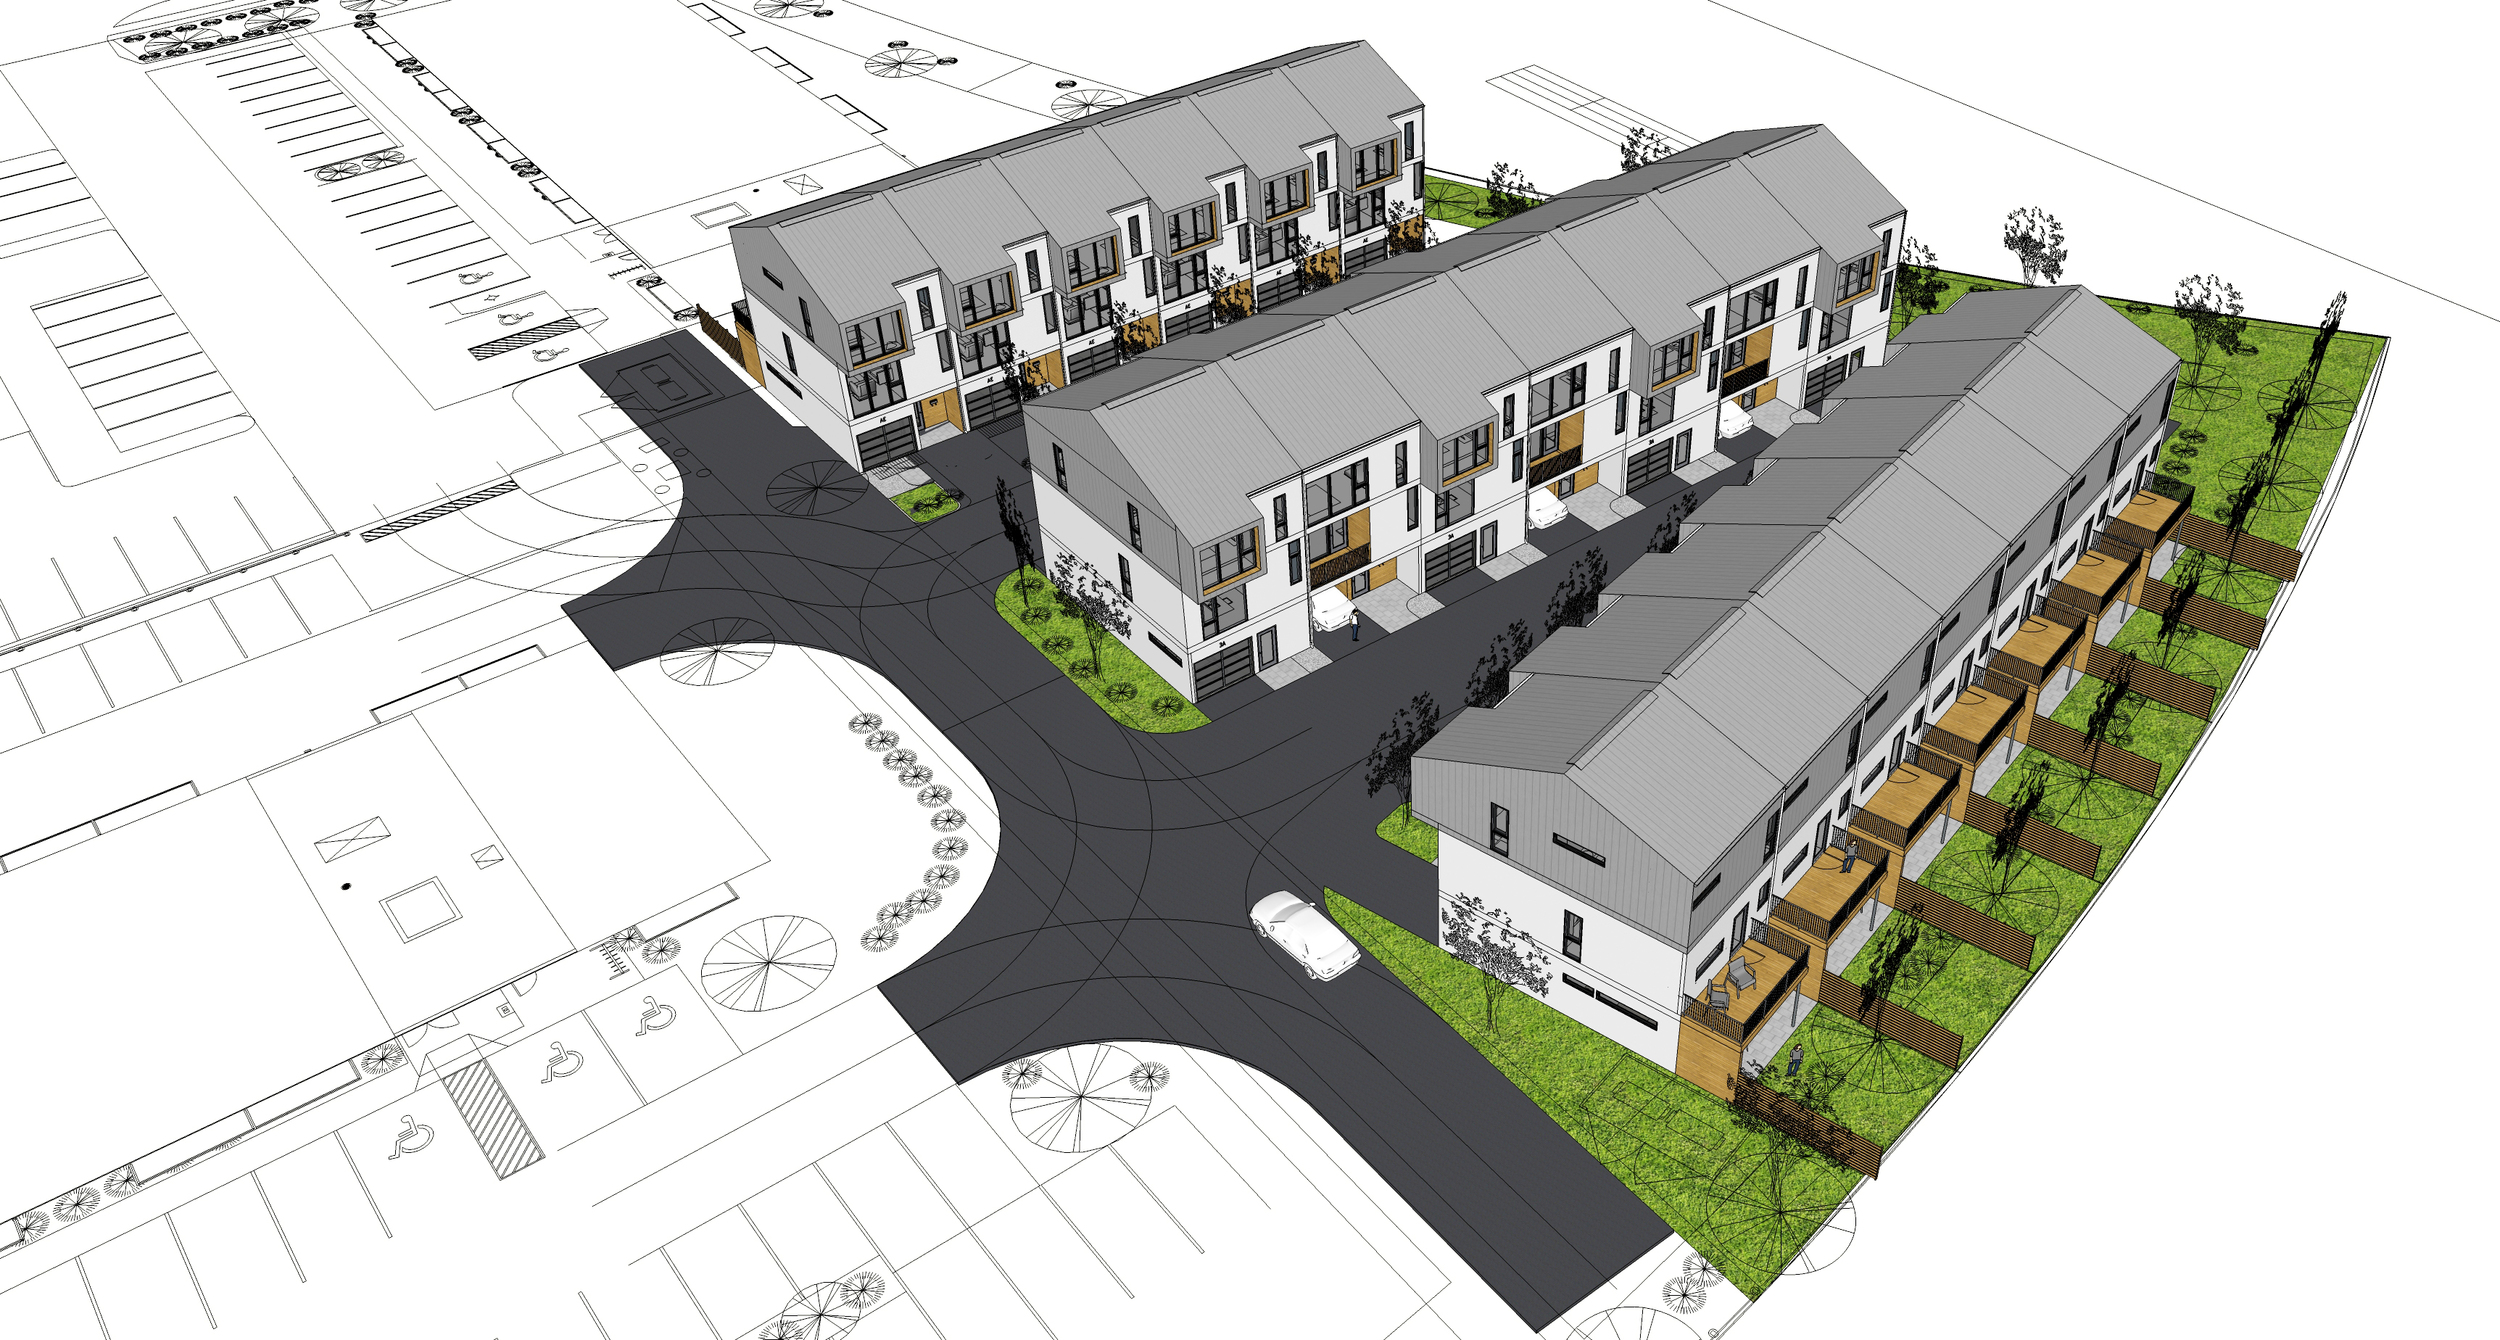 2013_12_Townhouses_perspective-4.jpg